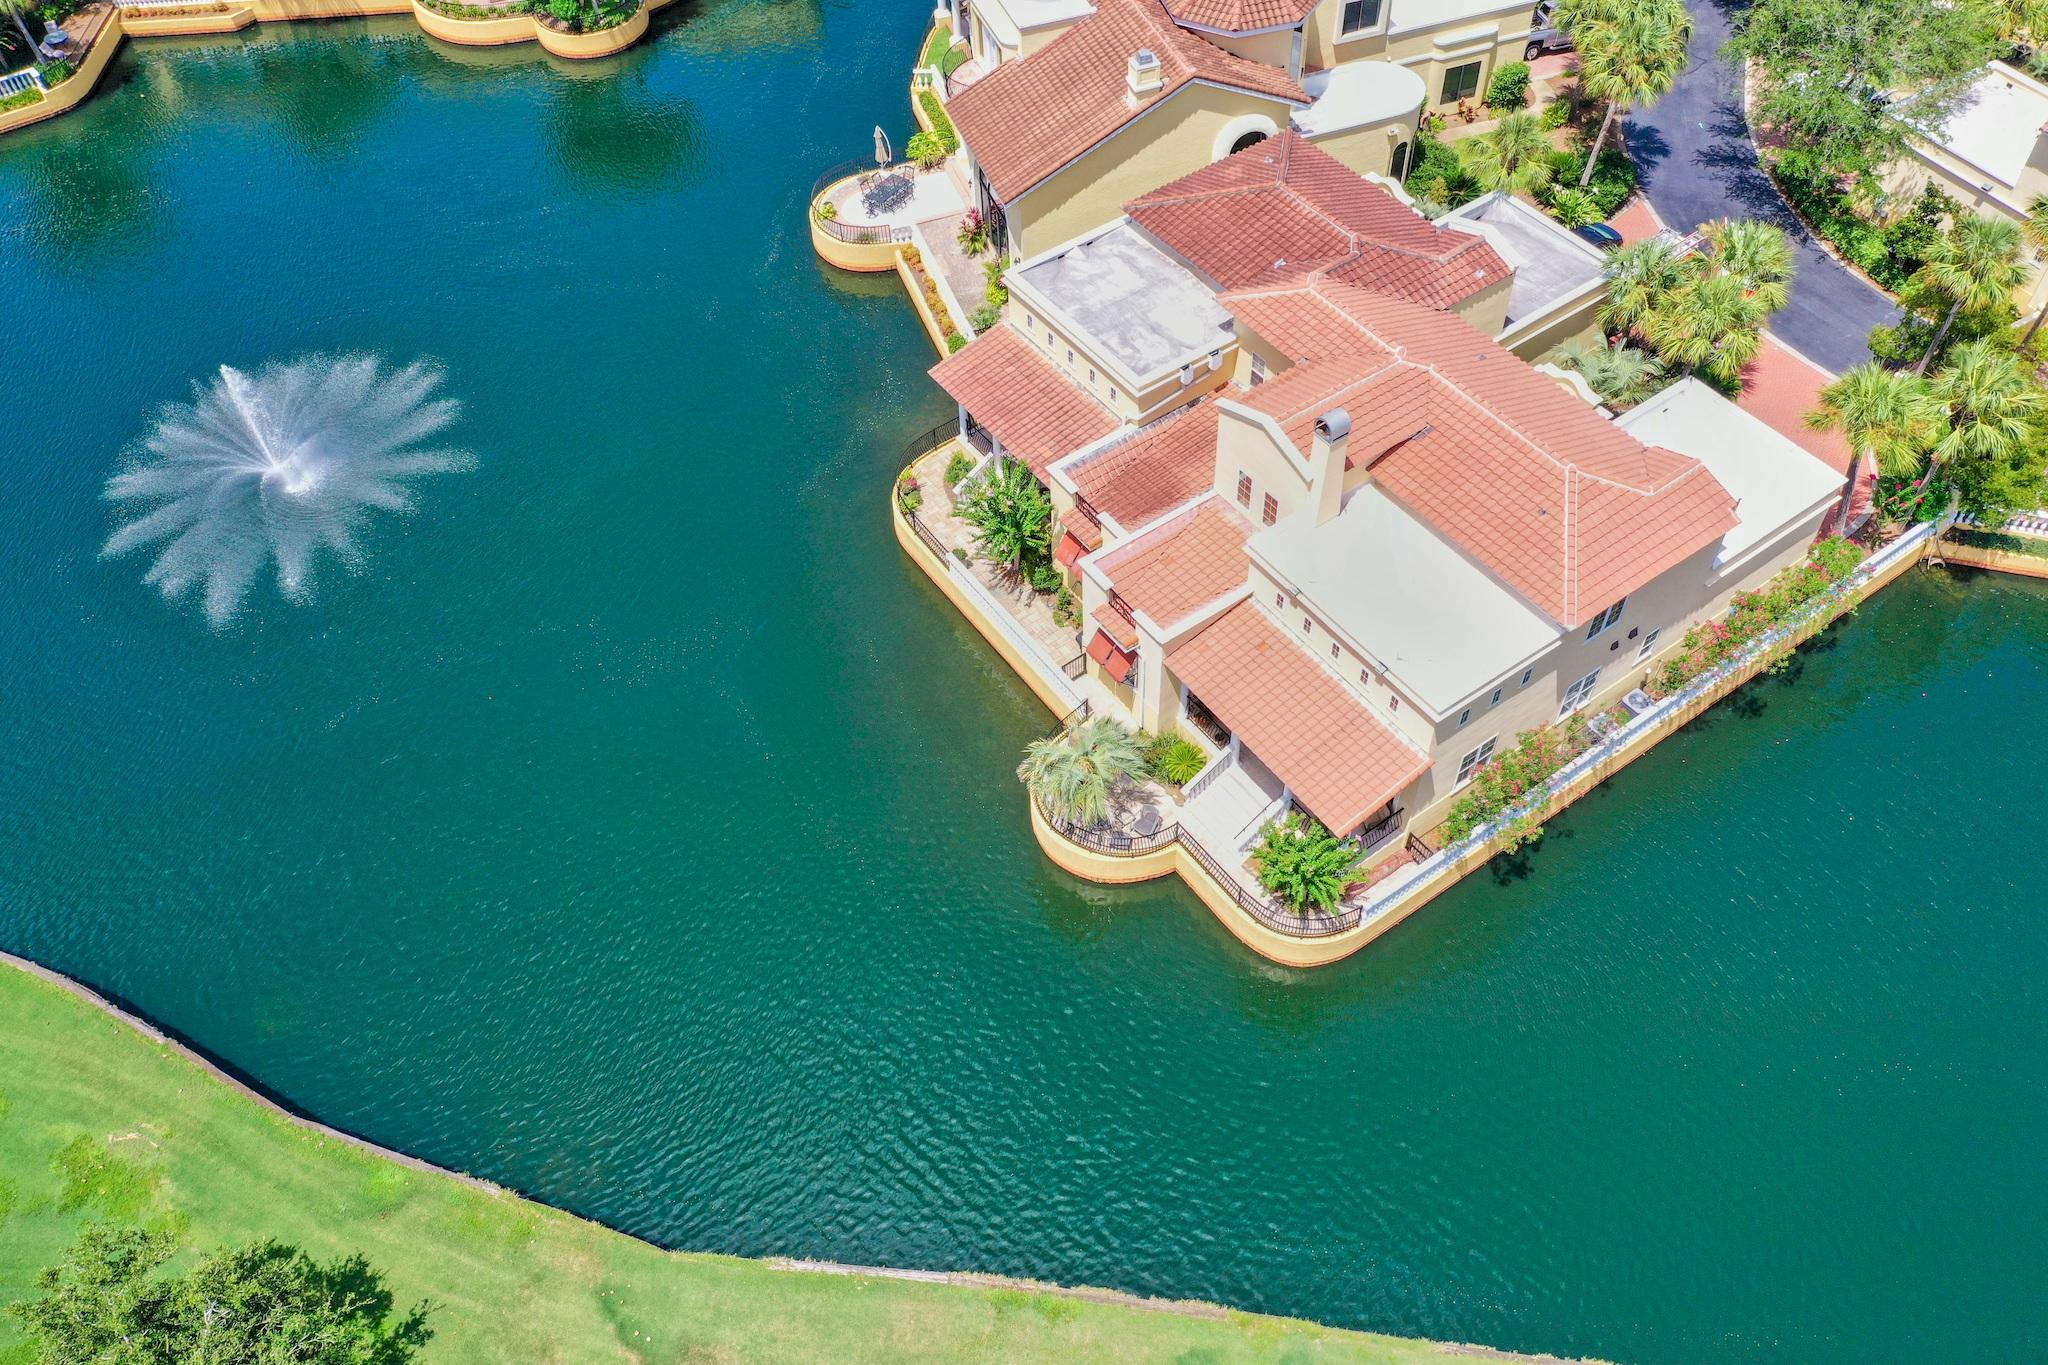 Gated and rental restricted, The Fountains is conveniently located directly across from The Village